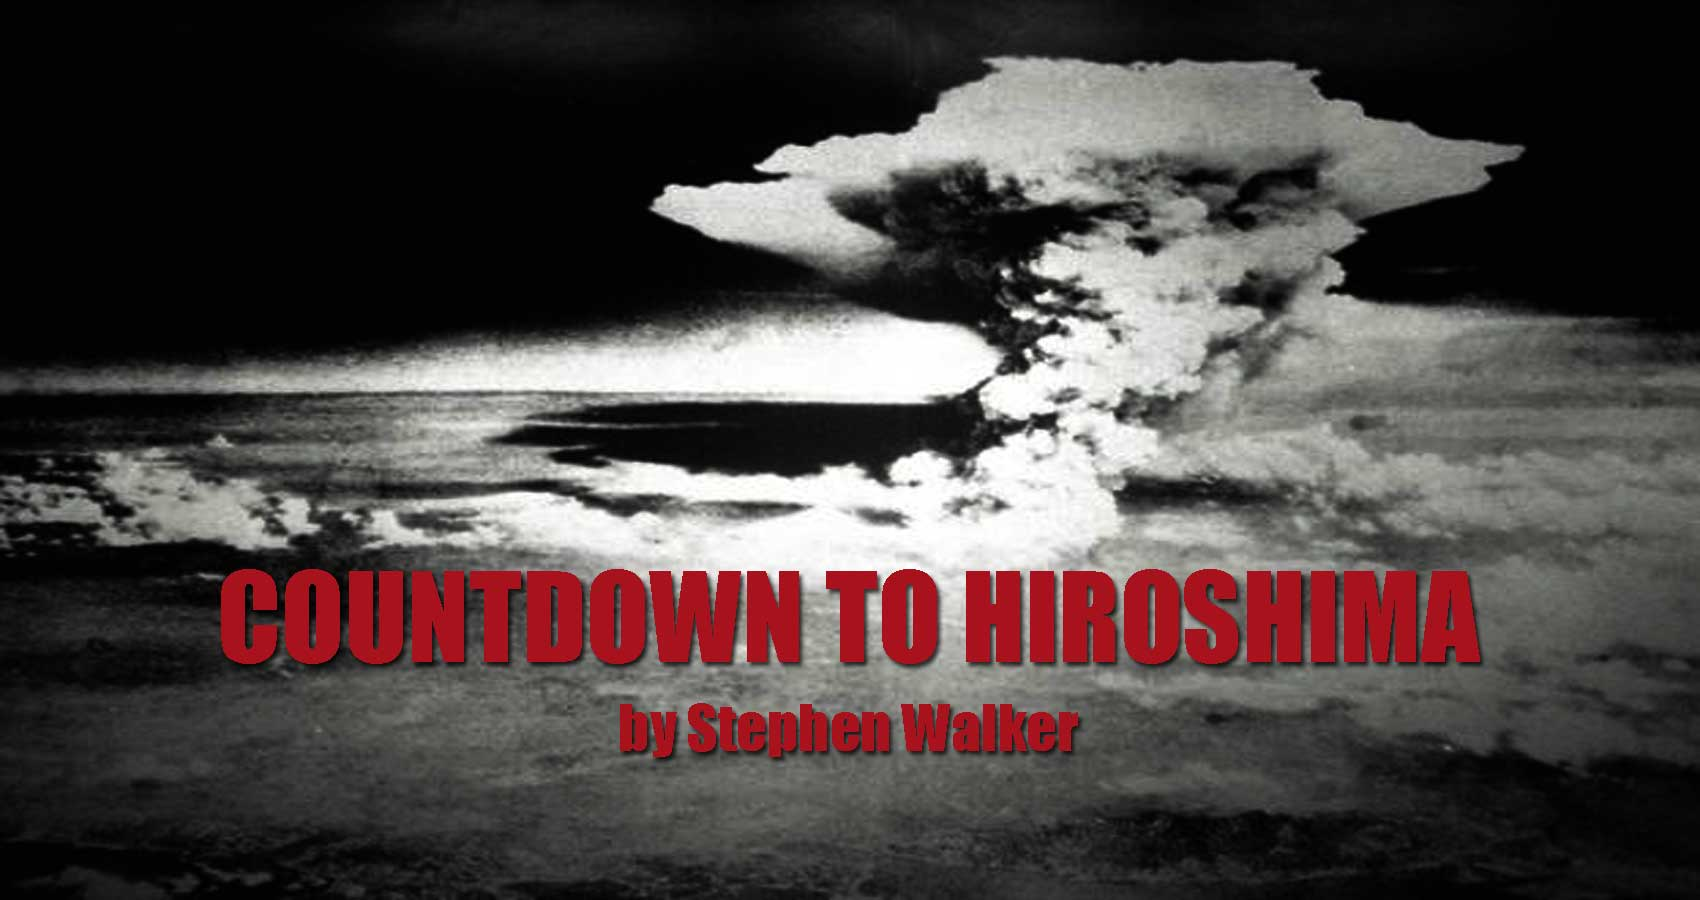 spillwords.com Countdown To Hiroshima by Stephen Walker